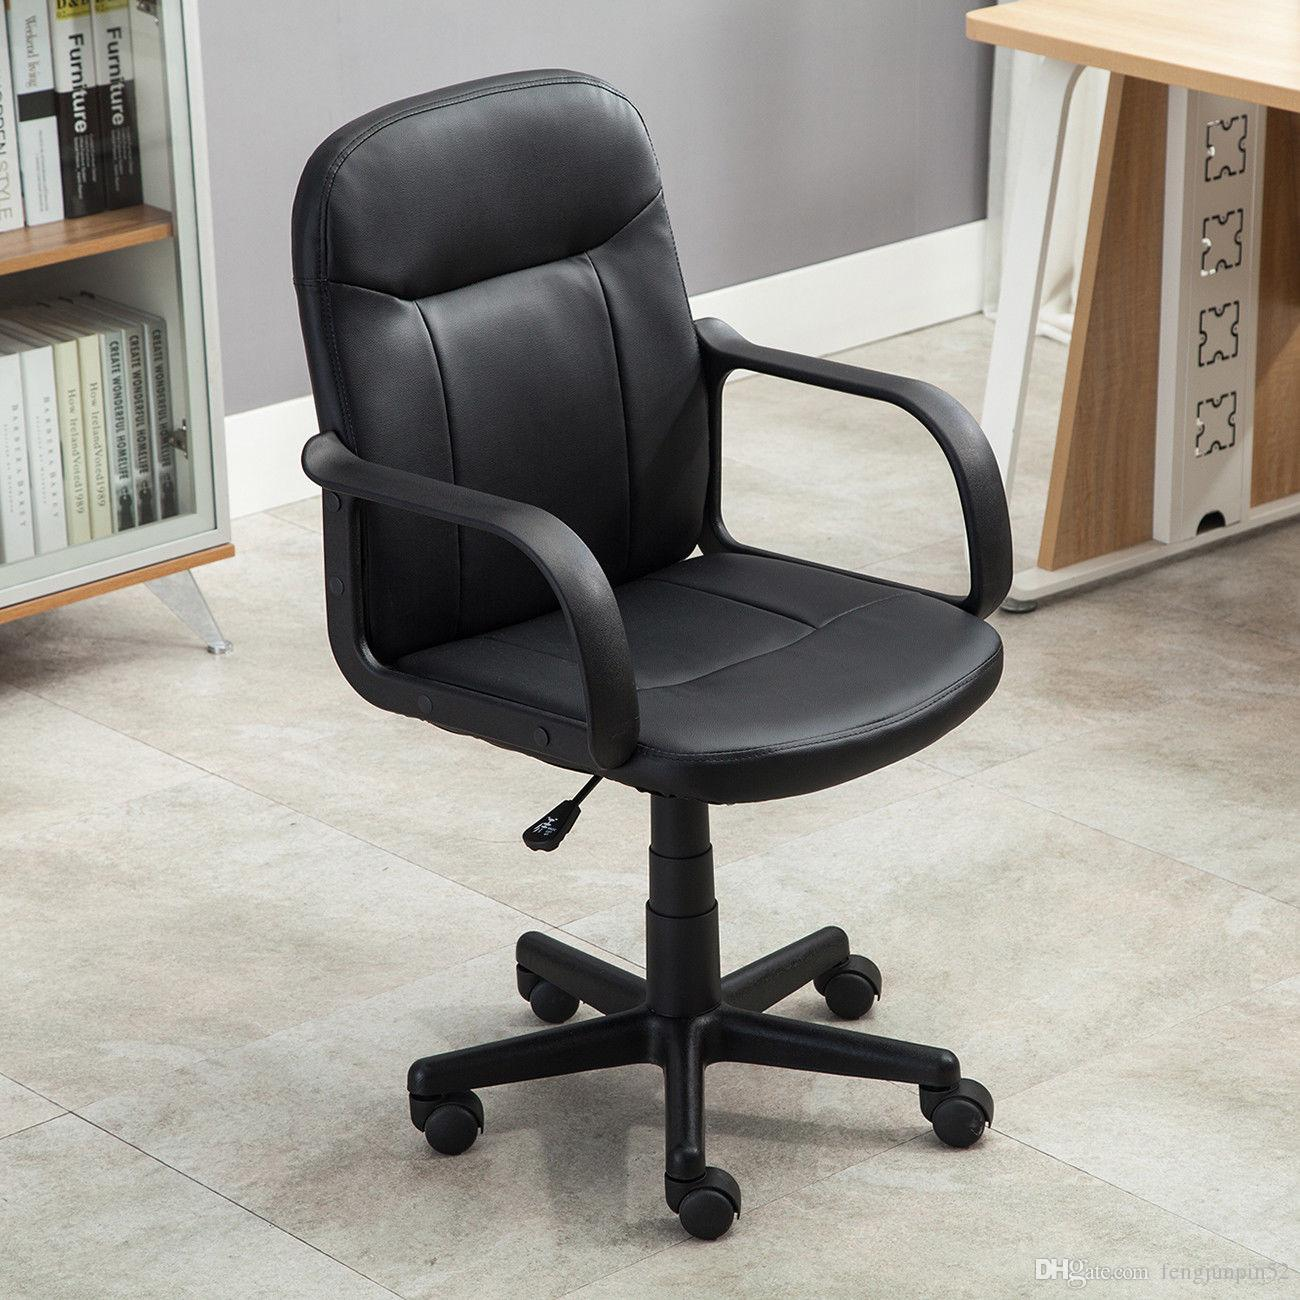 modern office chair. 2018 New Modern Office Executive Chair Pu Leather Computer Black From Fengjunpin52, $46.24 | Dhgate.Com E